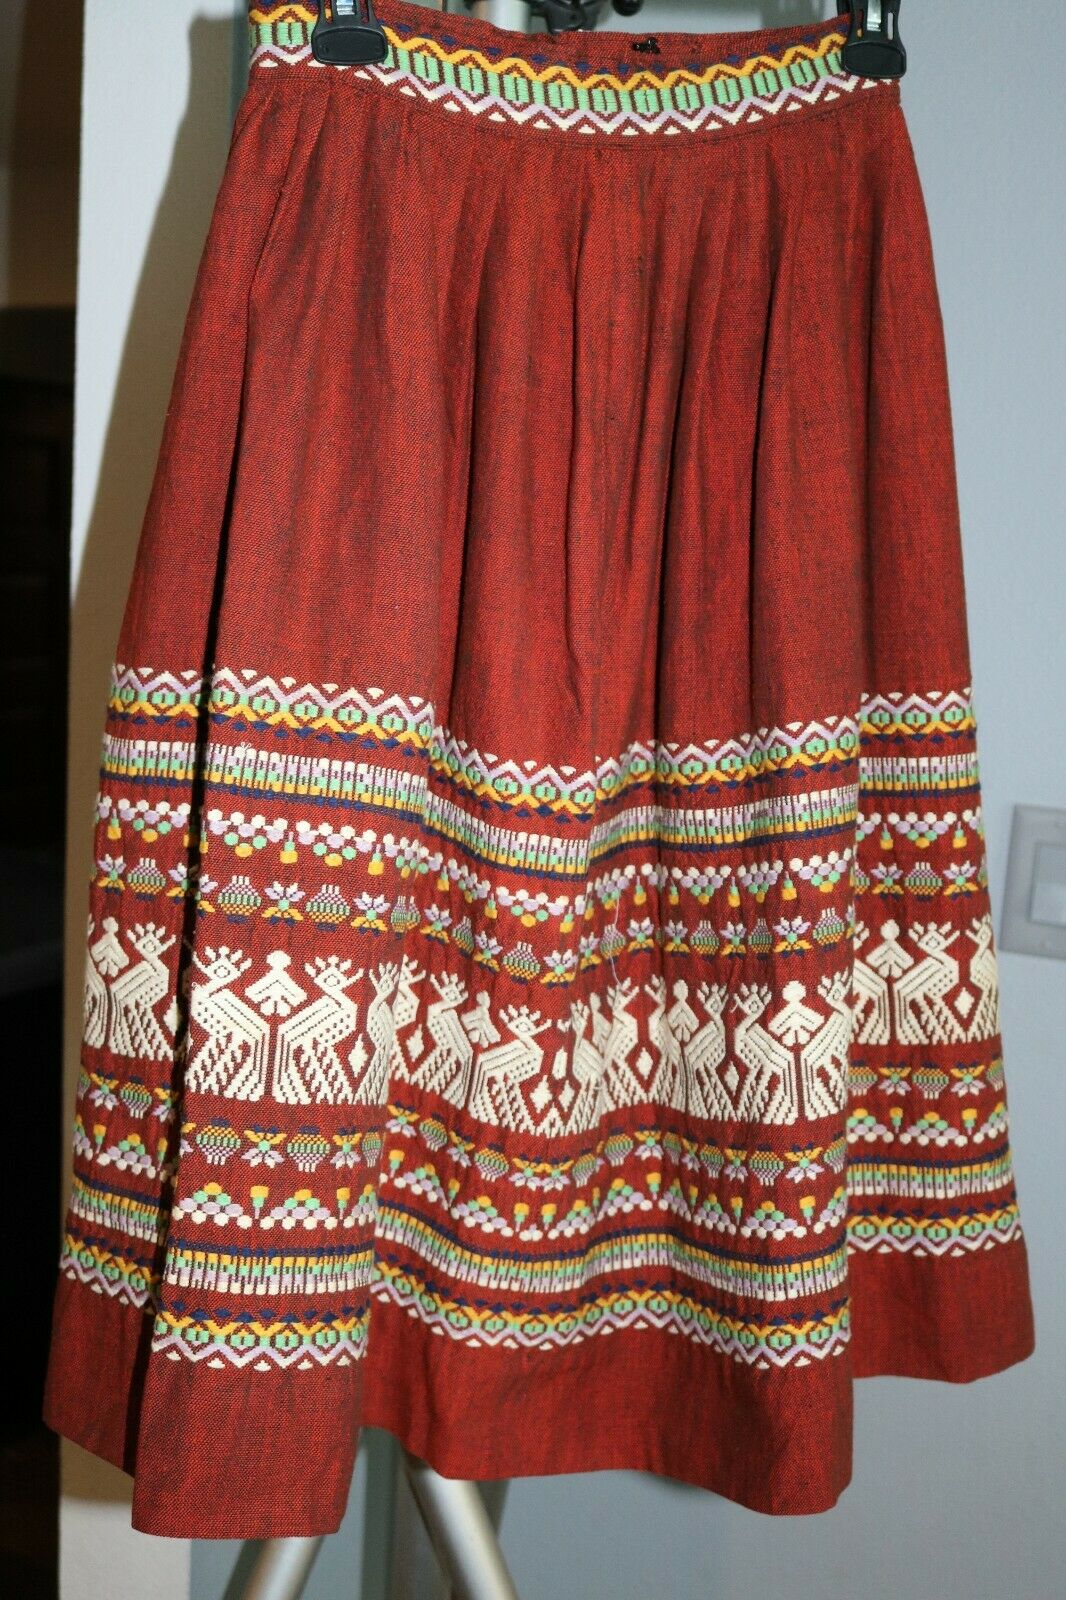 butterfly print embroidery folk midi skirt made in Guatemala 1950s red cotton circle skirt